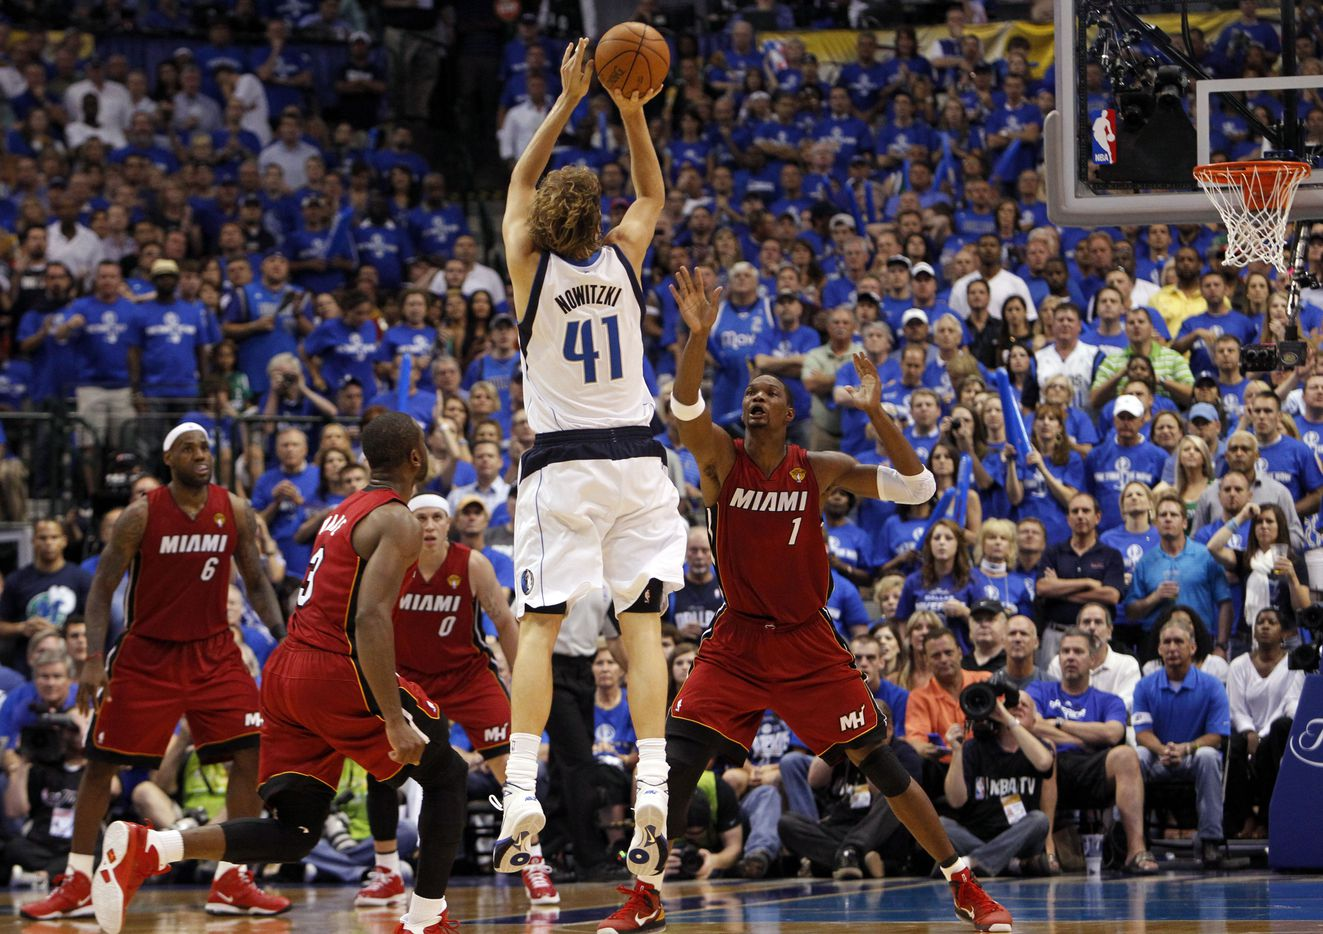 Dallas Mavericks power forward Dirk Nowitzki (41) hits a three pointer against Miami Heat power forward Chris Bosh (1) in the third quarter during Game 3 of the NBA Finals at American Airlines Center Sunday, June 5, 2011 in Dallas.  (Tom Fox/The Dallas Morning News)